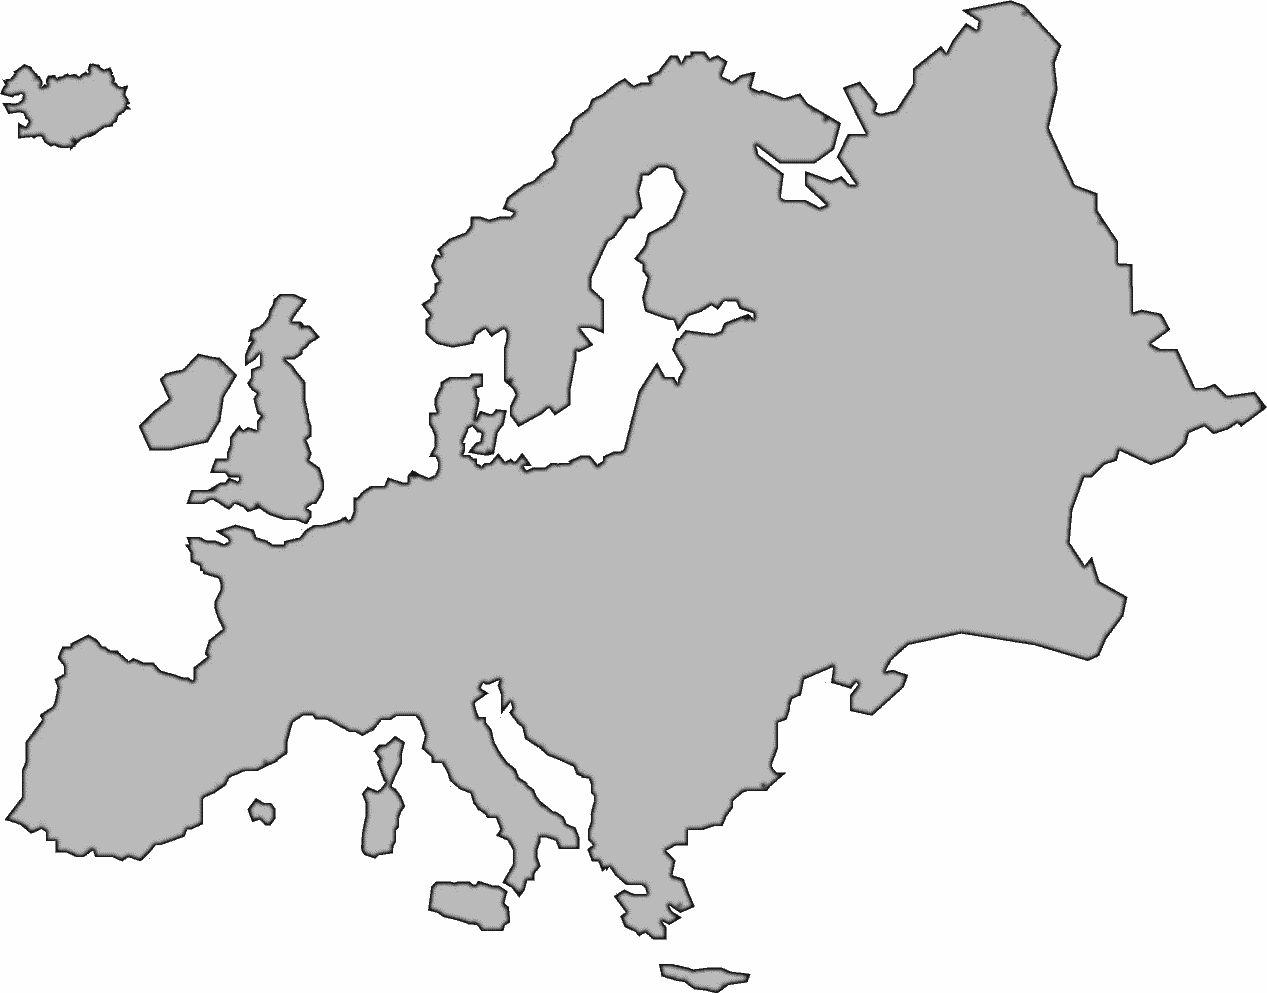 Europe cliparts - Europe Clipart